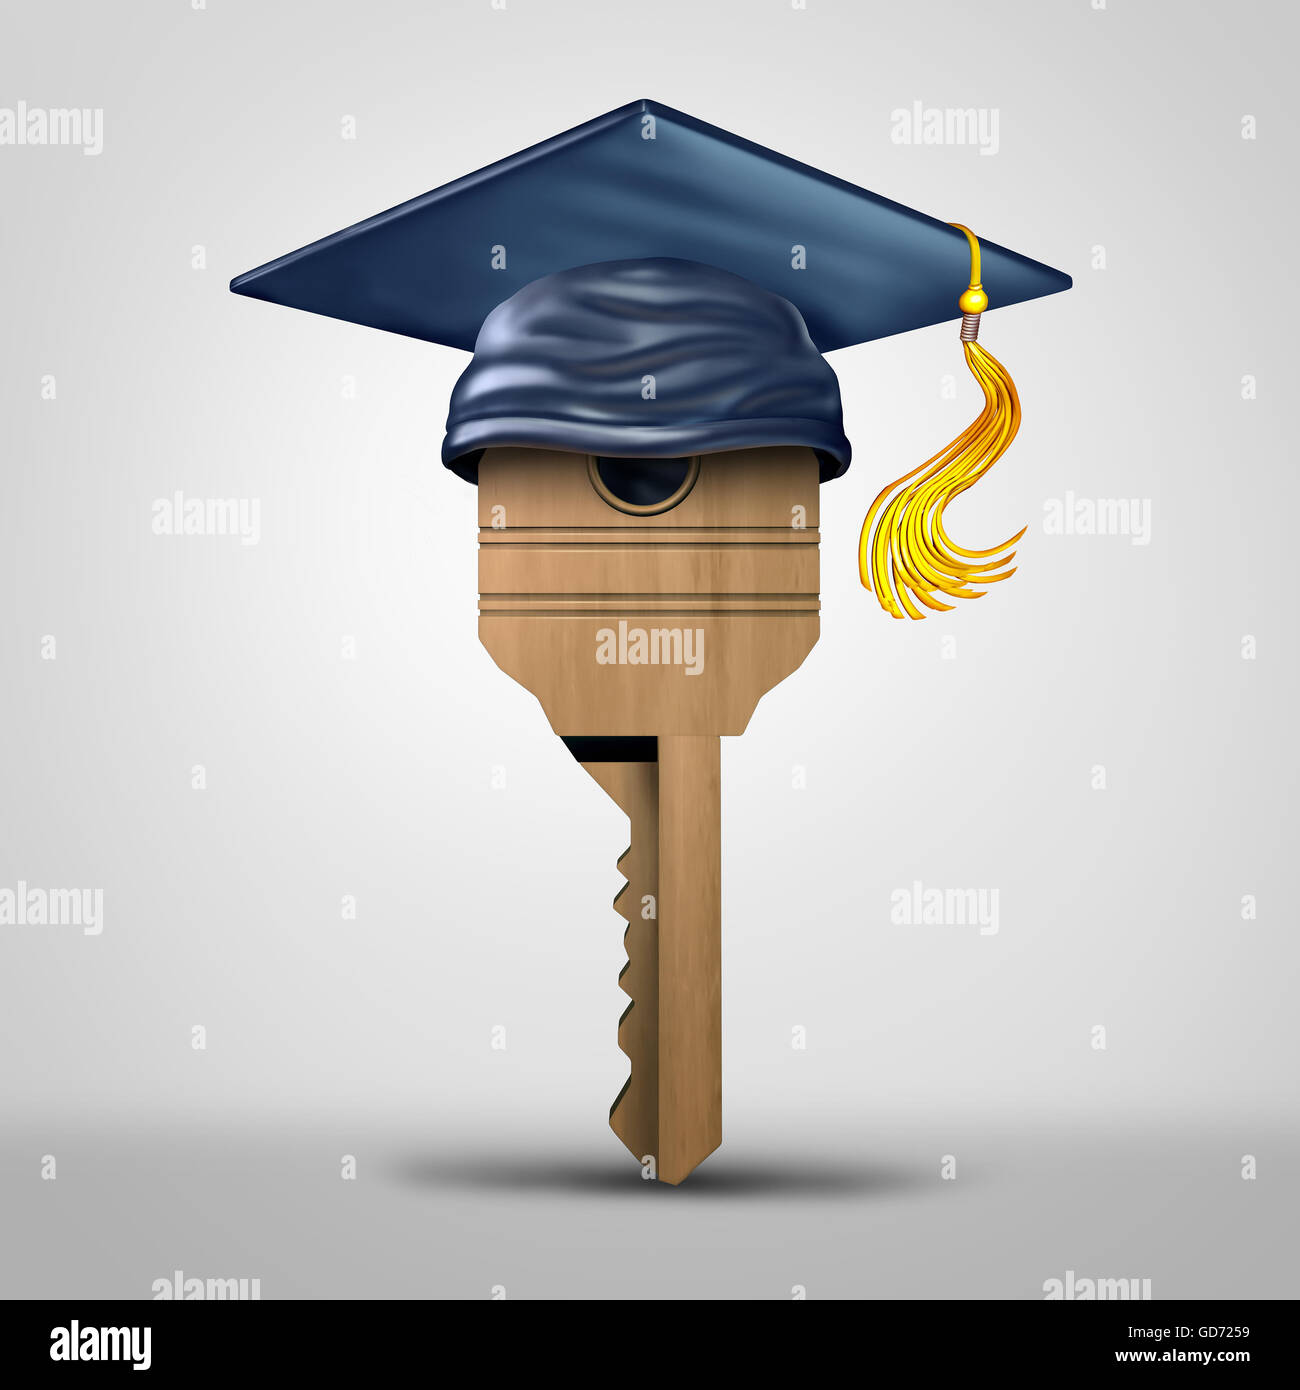 the key to success is education